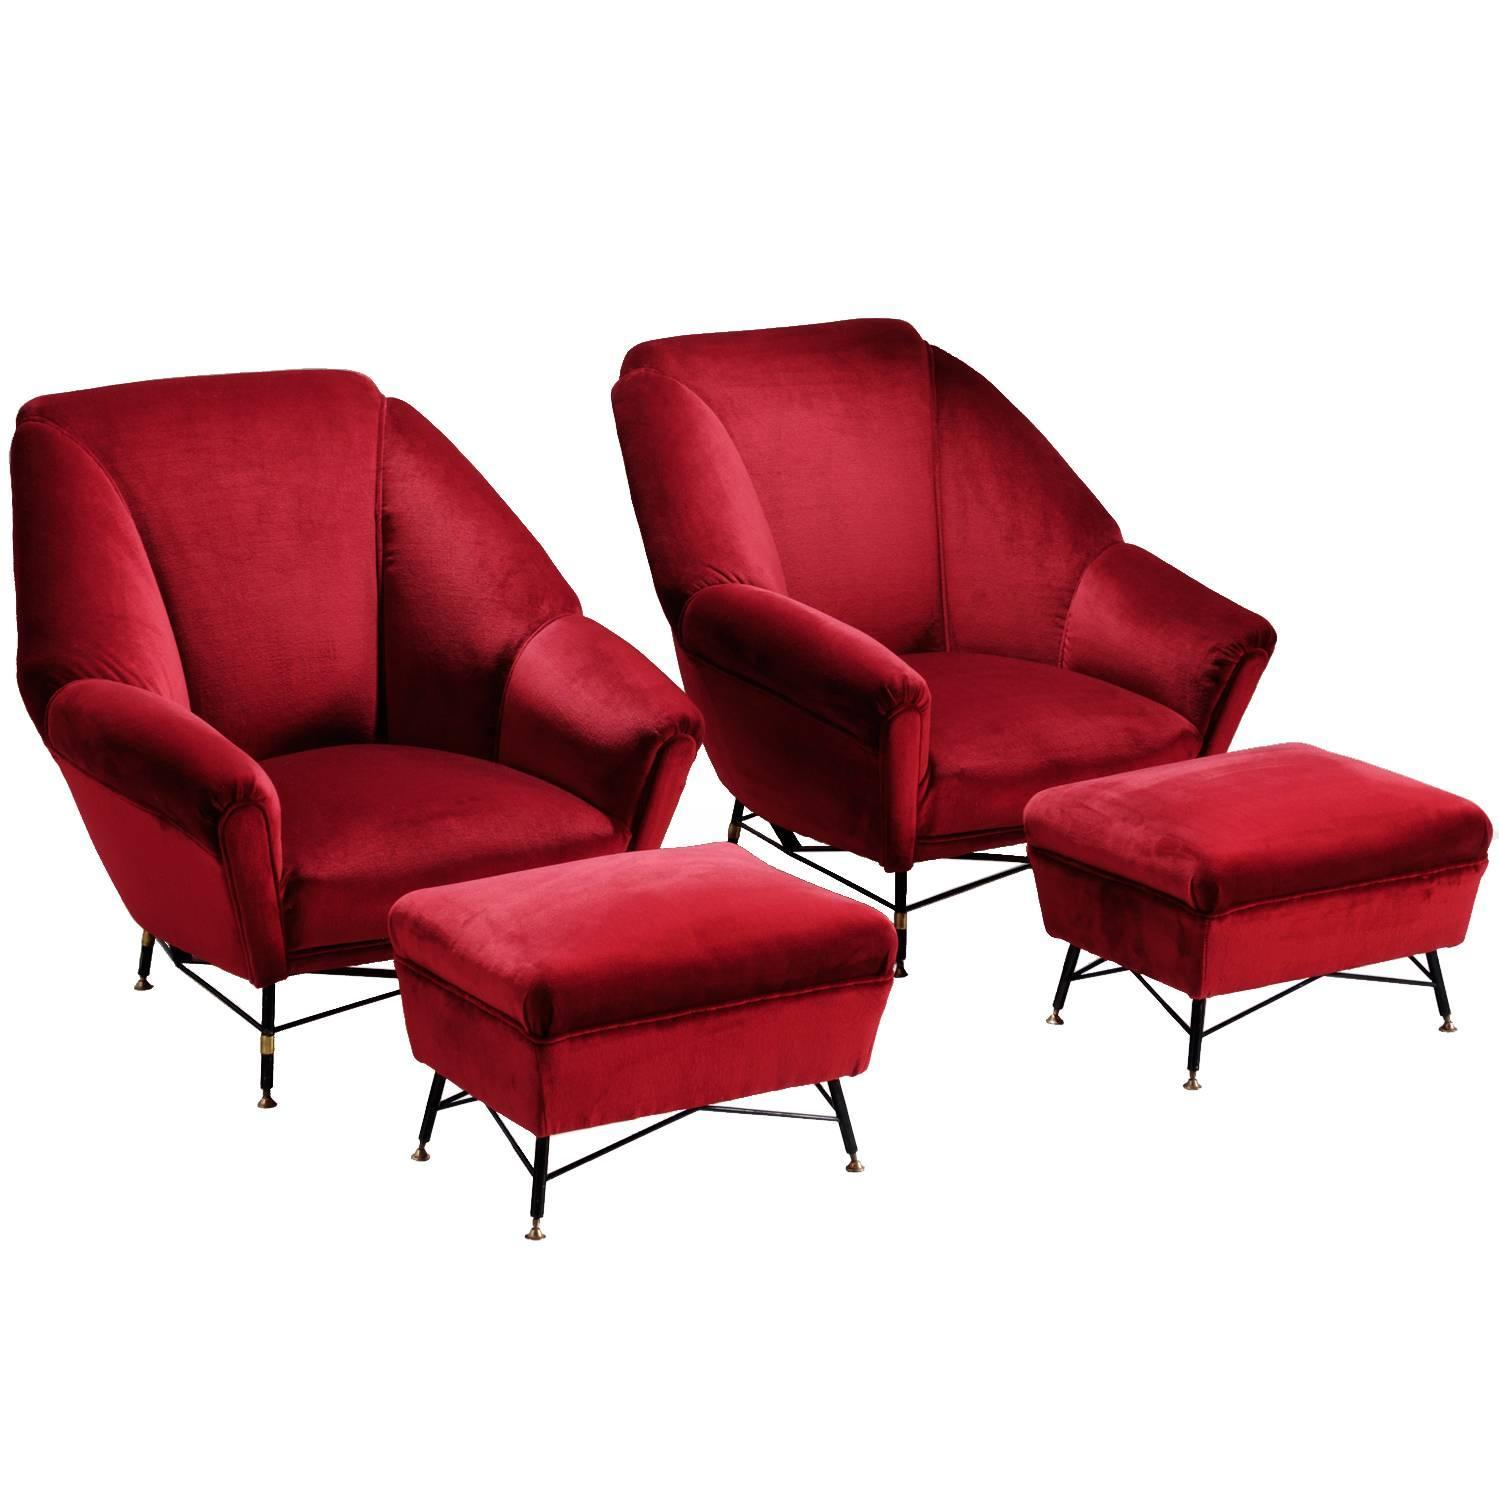 red lounge chair wicker outdoor rocking italien velvet with accompanying ottoman